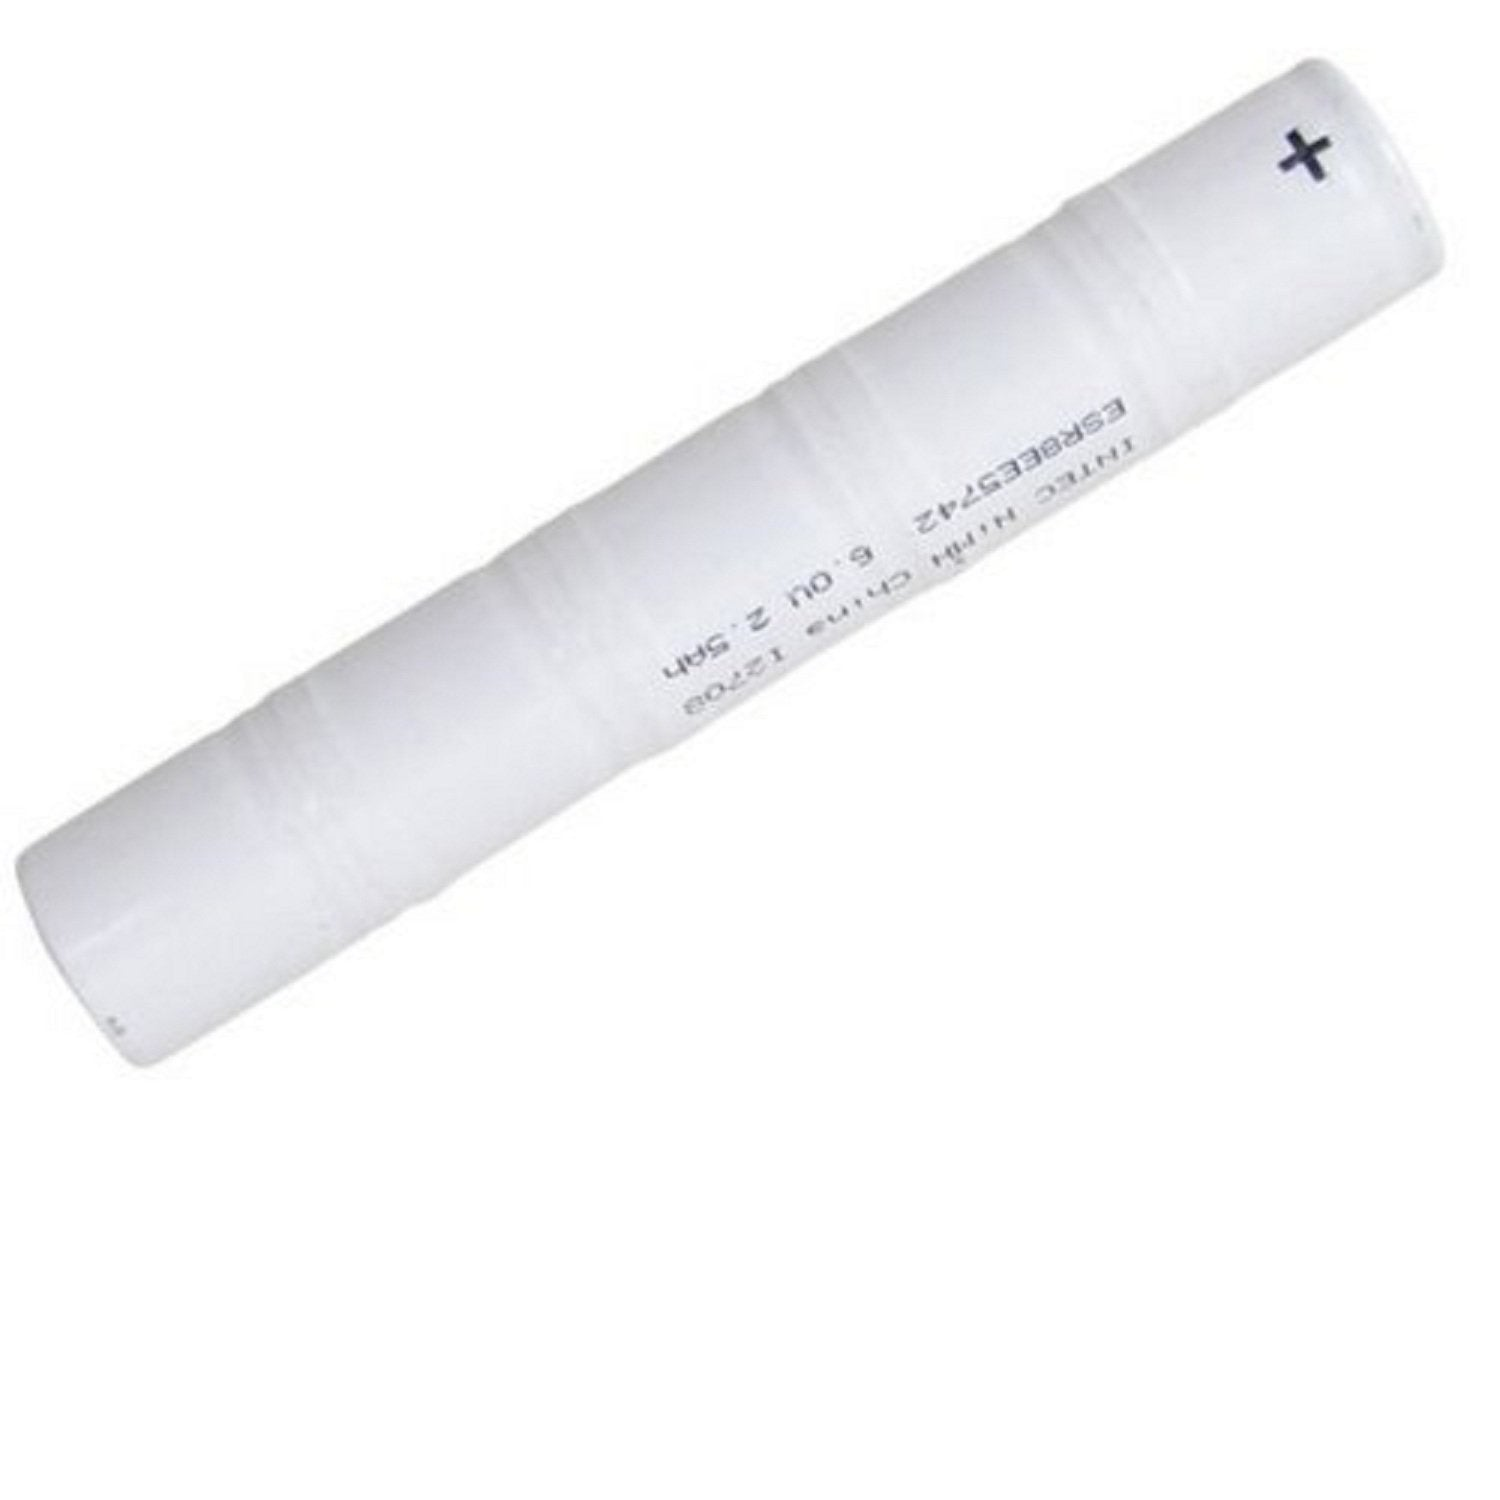 Maglite ML125-A3015 NiMH Battery For ML125 Flashlight System Tactical Gear Australia Supplier Distributor Dealer